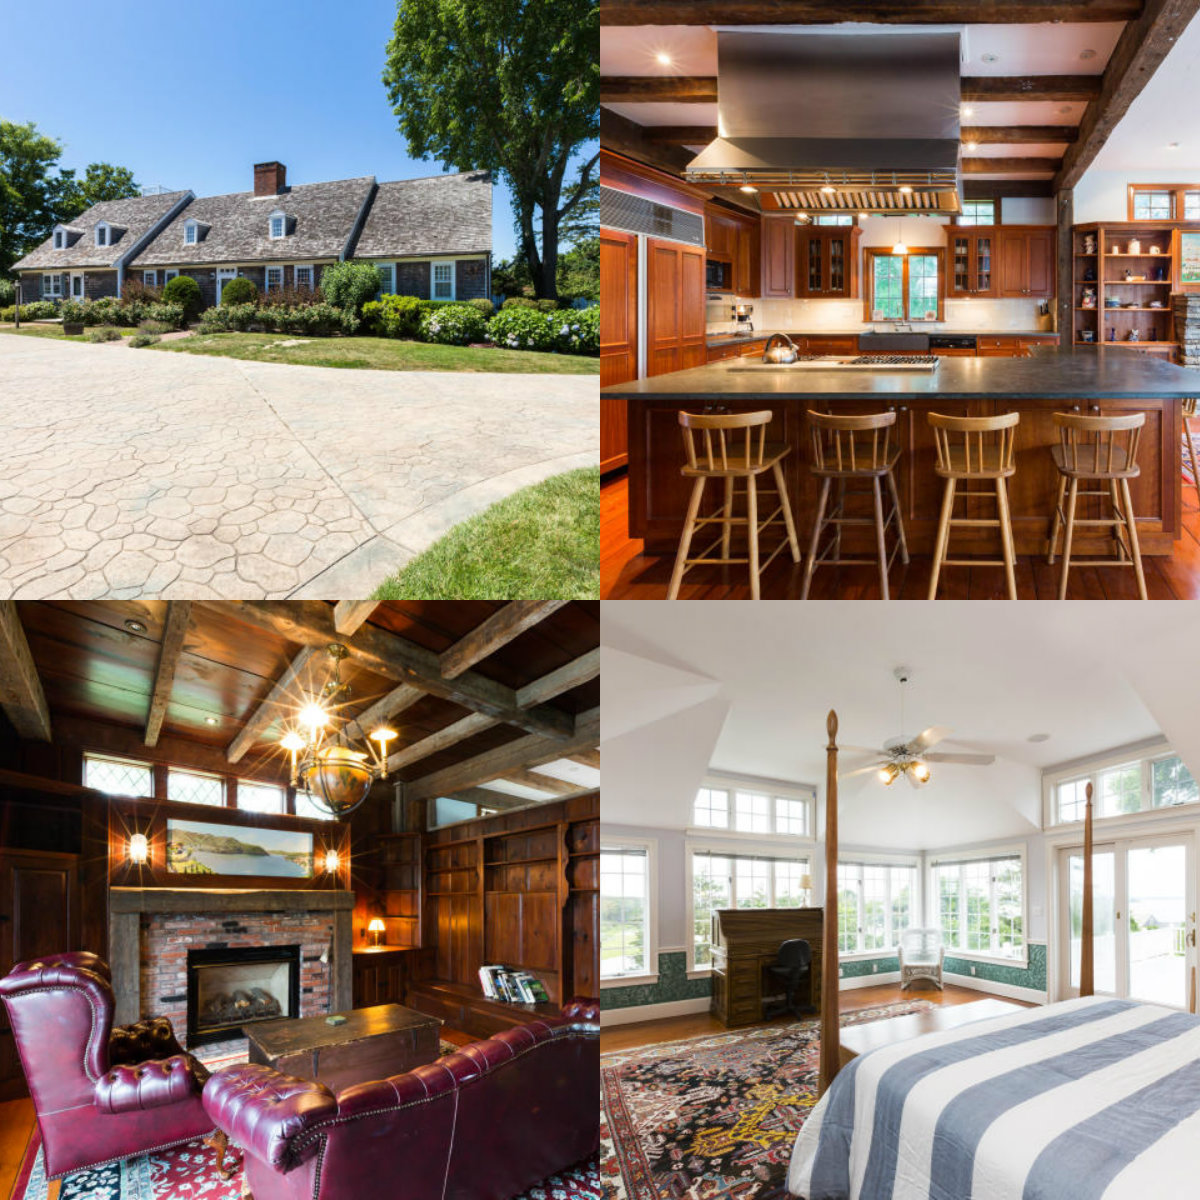 Images of 141 Cotchpinicut Road in Chatham on Cape Cod MA